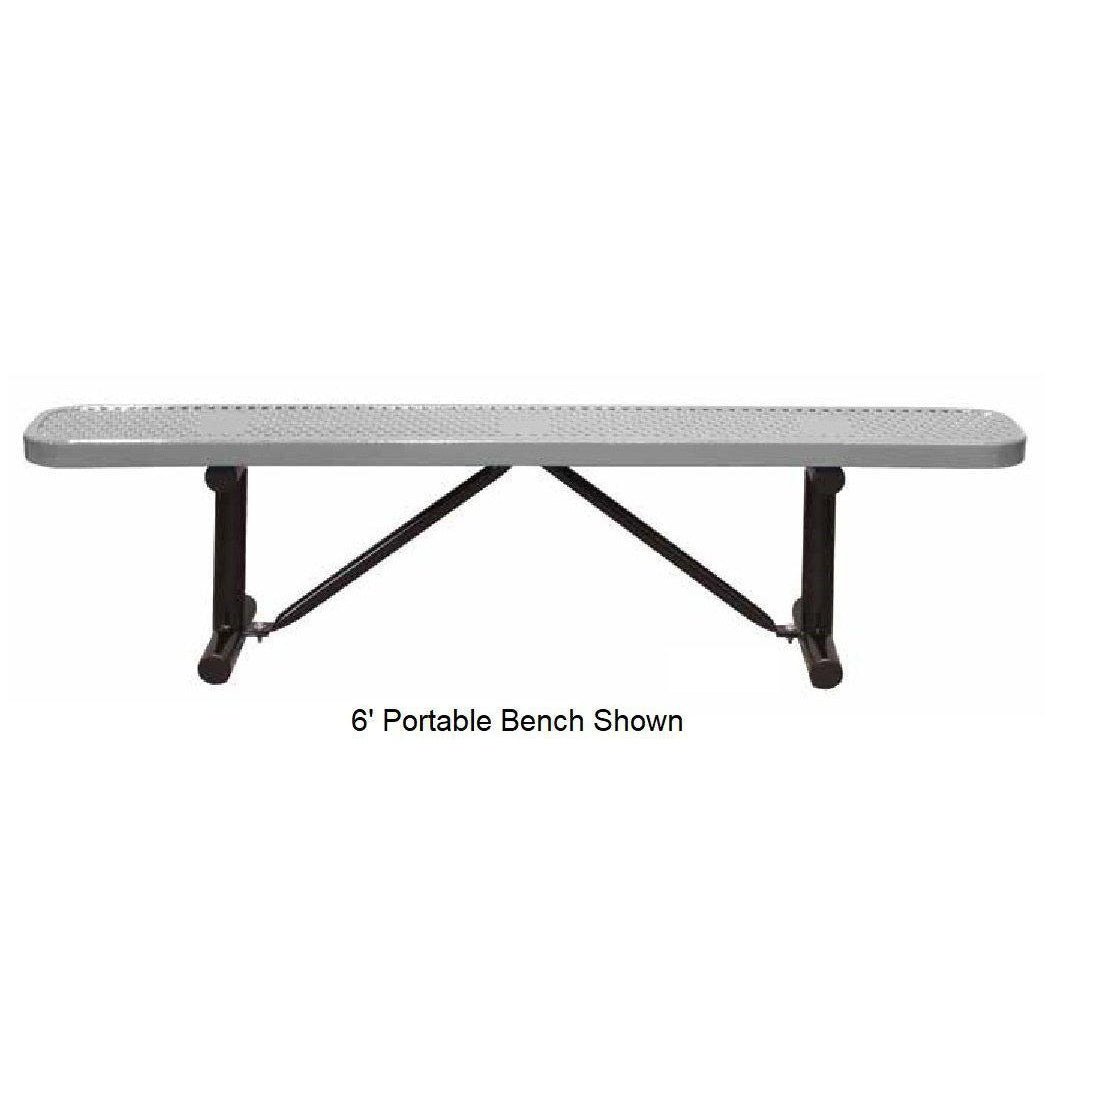 15' Standard Perforated Bench Without Back, Surface Mount